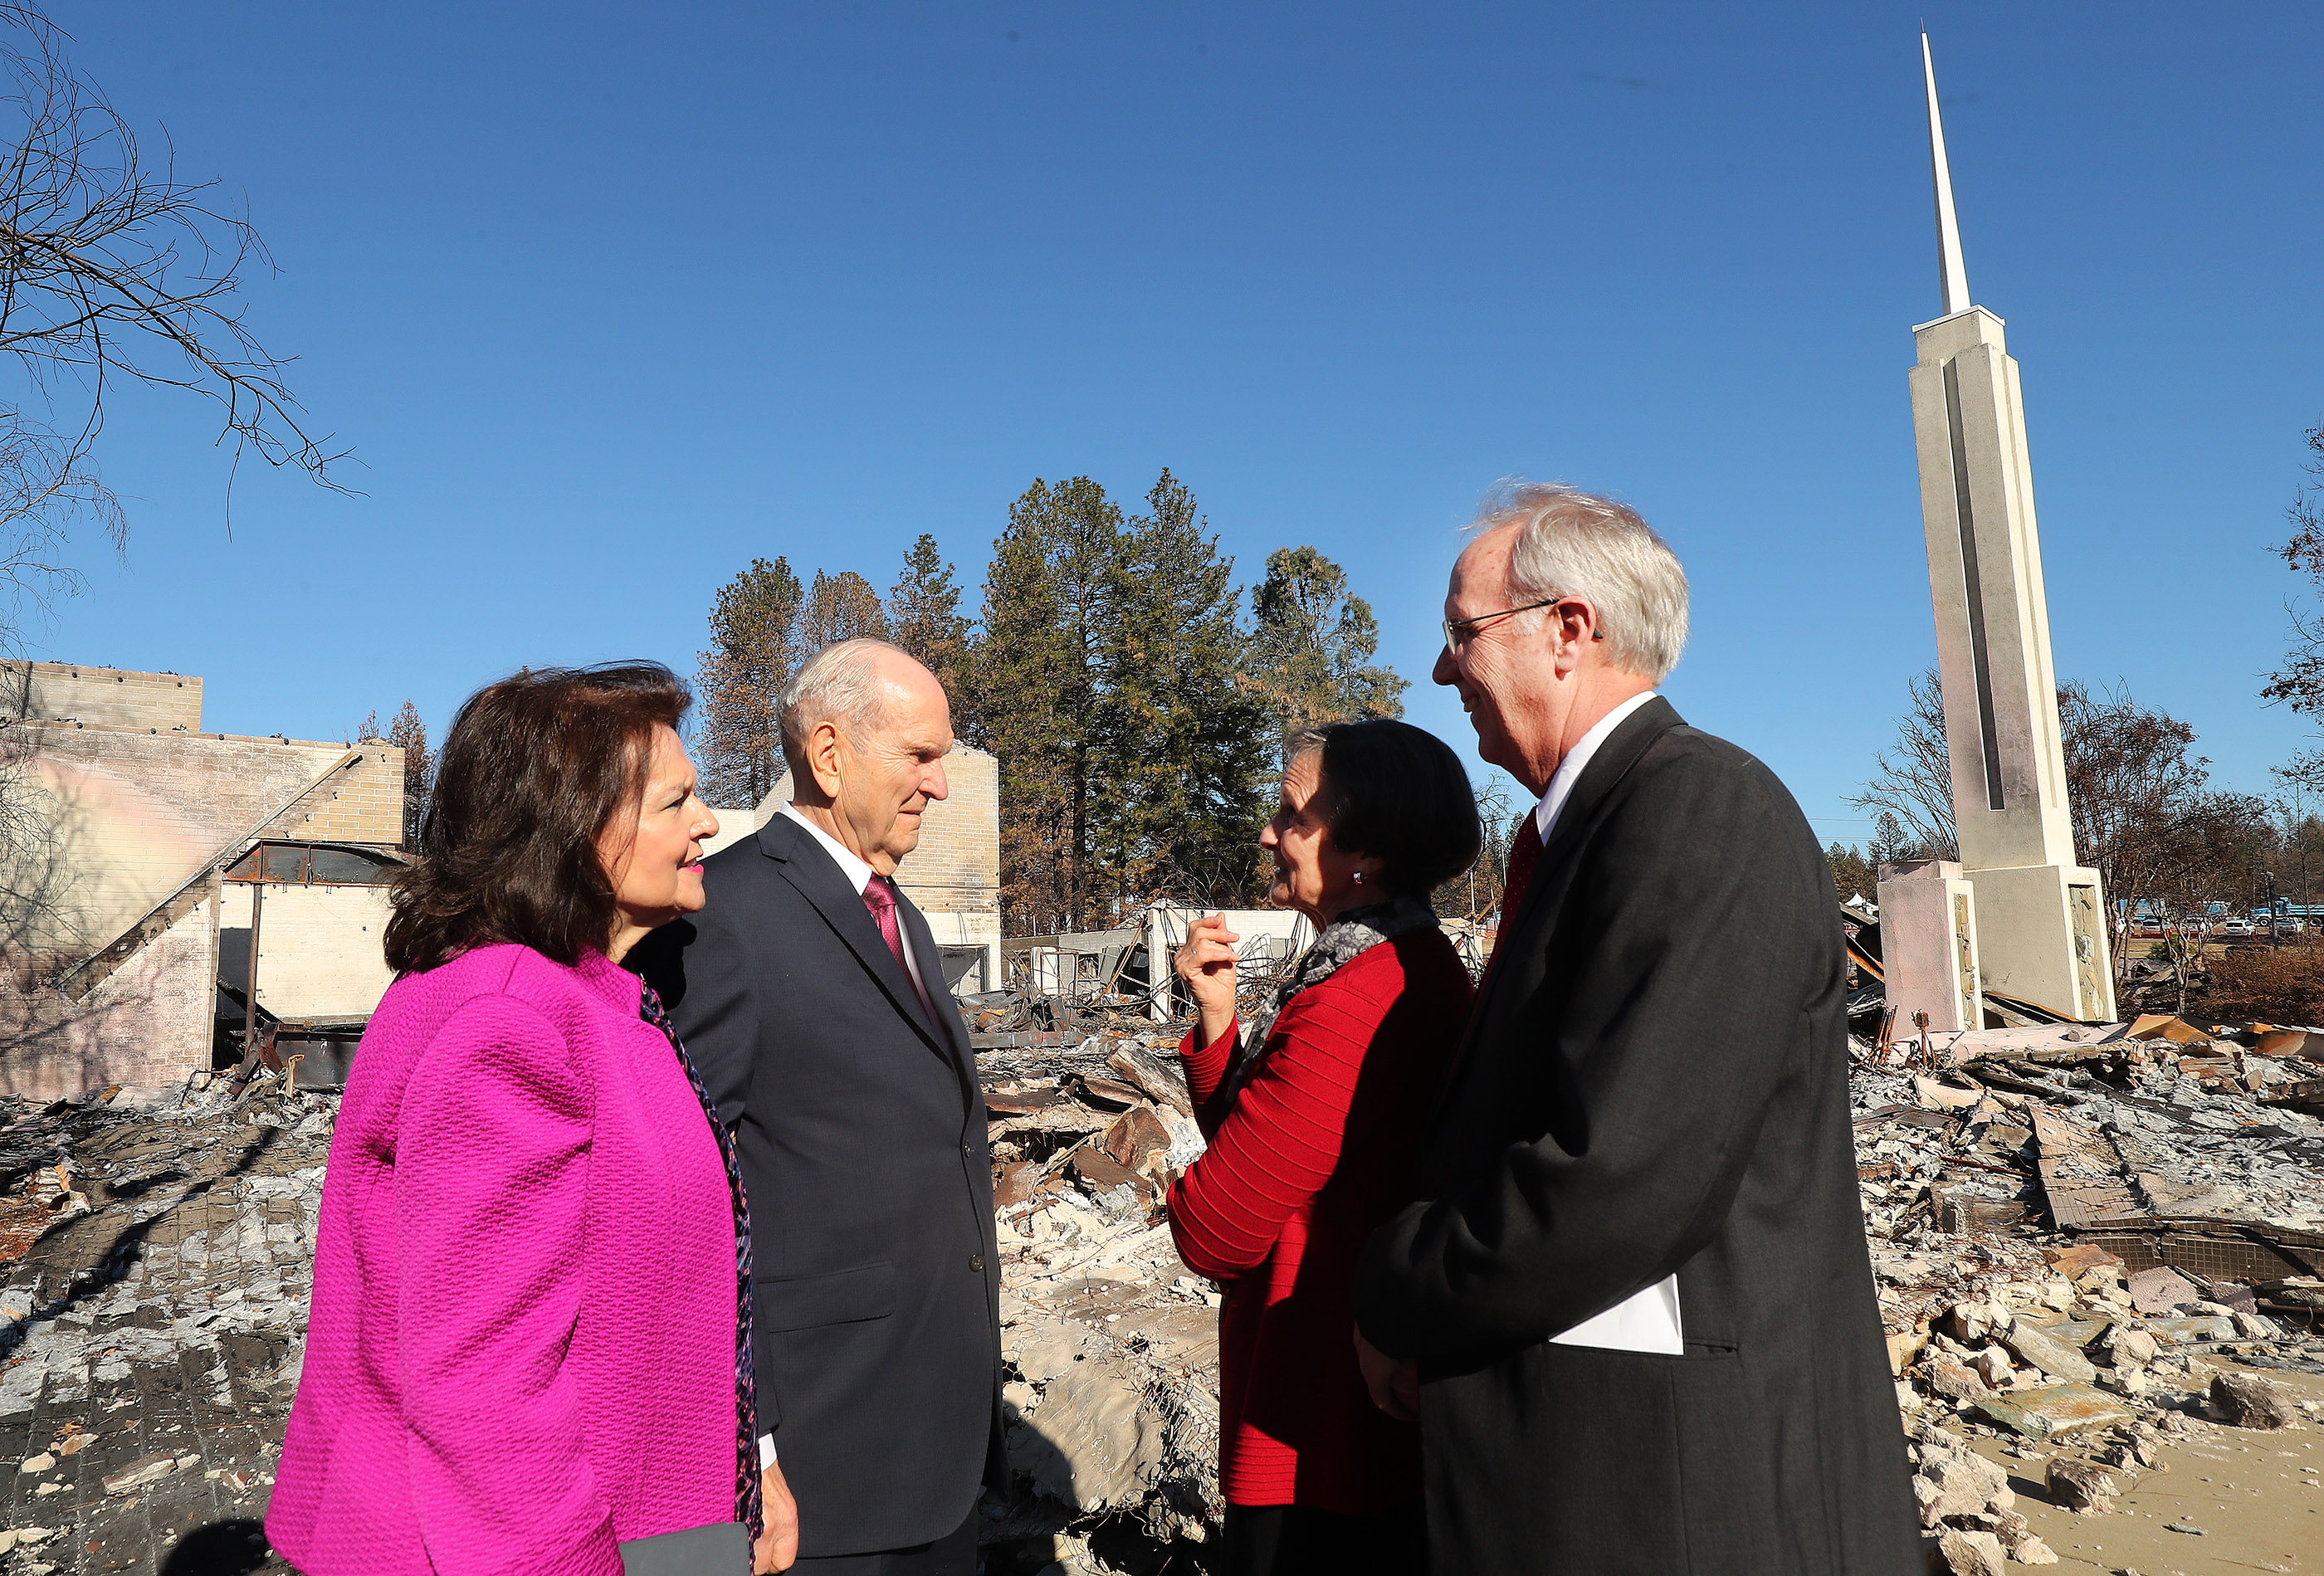 "President Russell M. Nelson of The Church of Jesus Christ of Latter-day Saints and his wife Wendy Nelson talk with fire victims Rick and KathieTurner by the burned LDS Chapel in Paradise, California on Sunday, Jan. 13, 2019, two months after the Camp Fire destroyed 1,400 homes and hundreds of businesses. President Nelson wrote about the visit in an op-ed published Feb. 10 in The Arizona Republic. Life with God is far better than one without him, he wrote in the op-ed, titled ""Healing Hearts."""